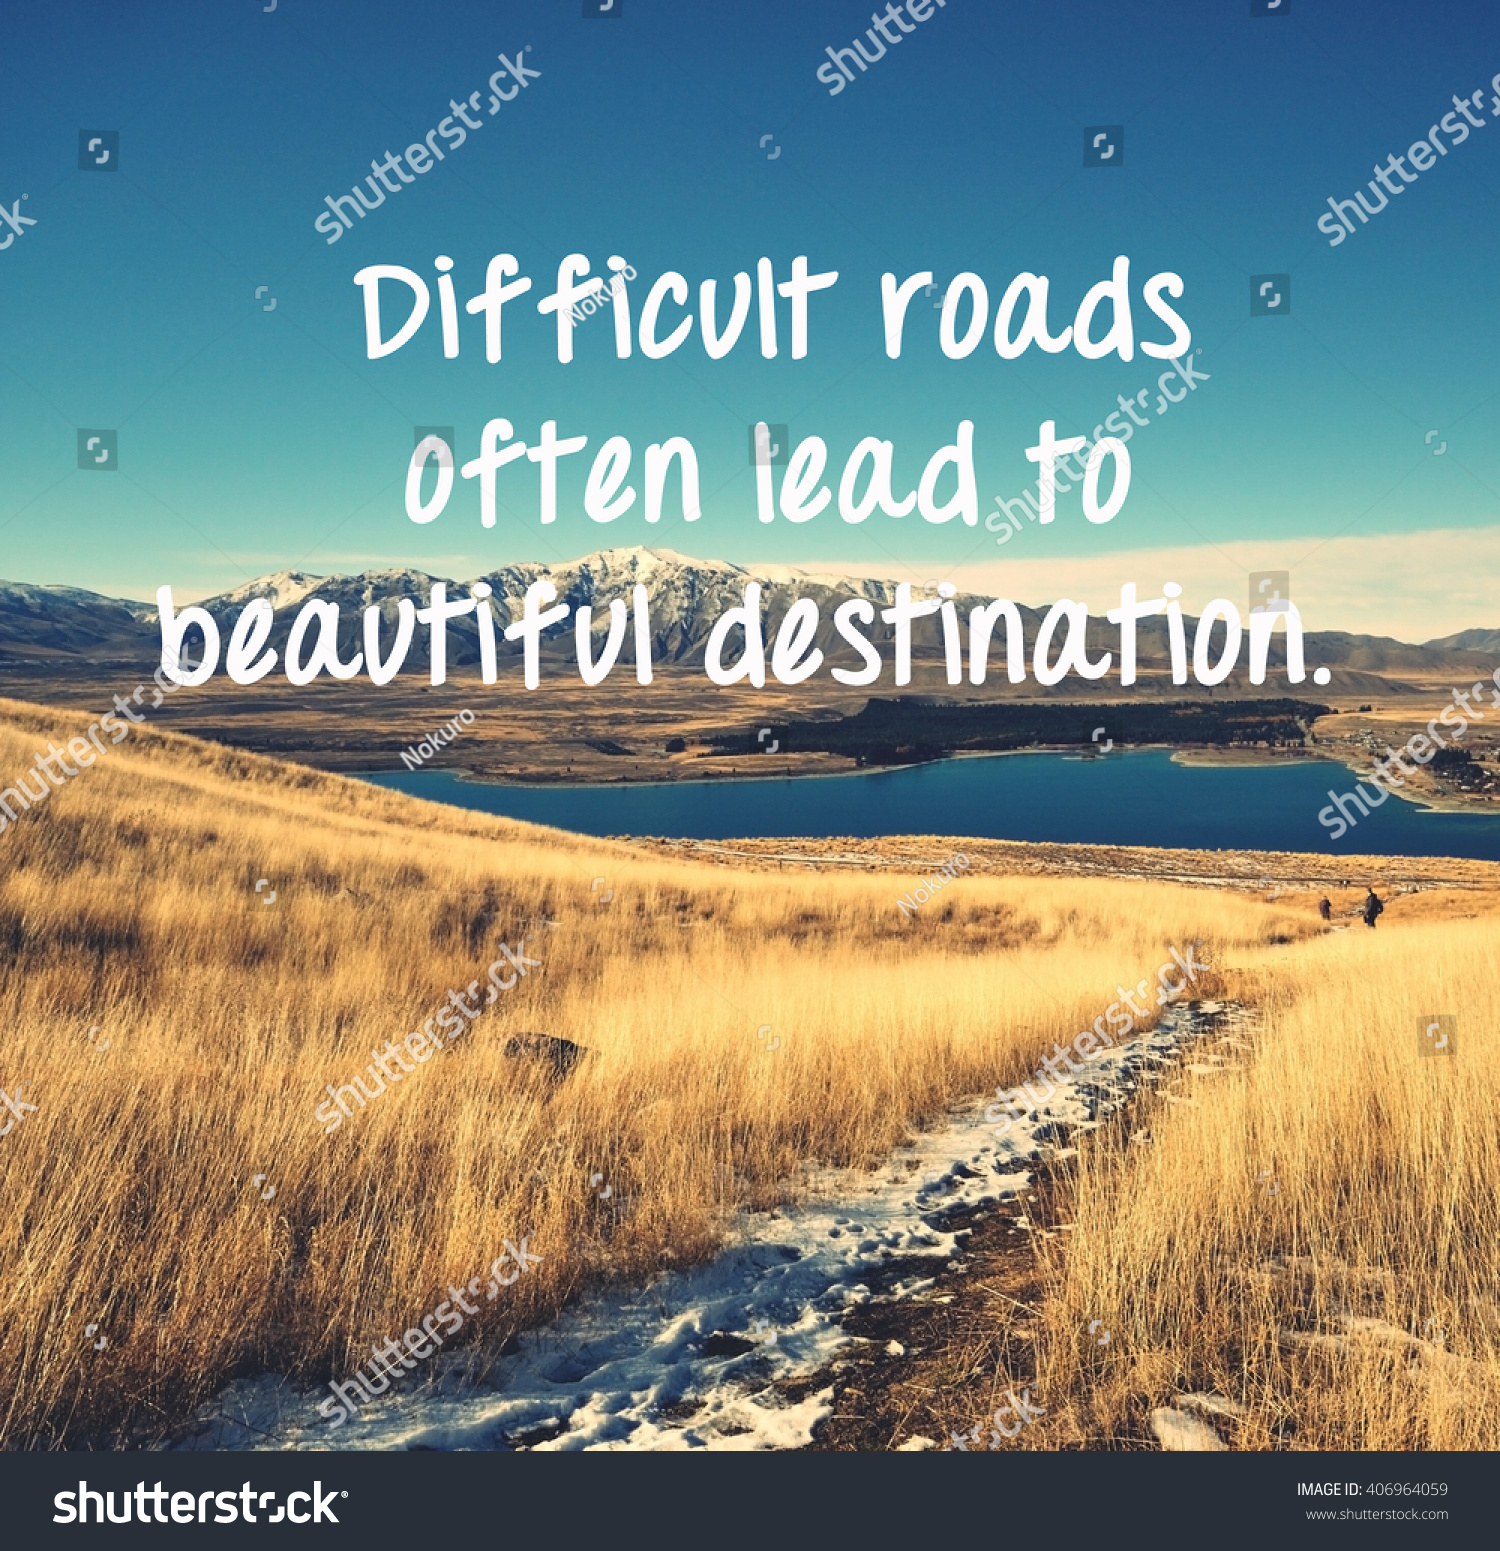 Picture Inspirational Quotes About Life Life Inspirational Quotes Words Difficult Roads Stock Photo